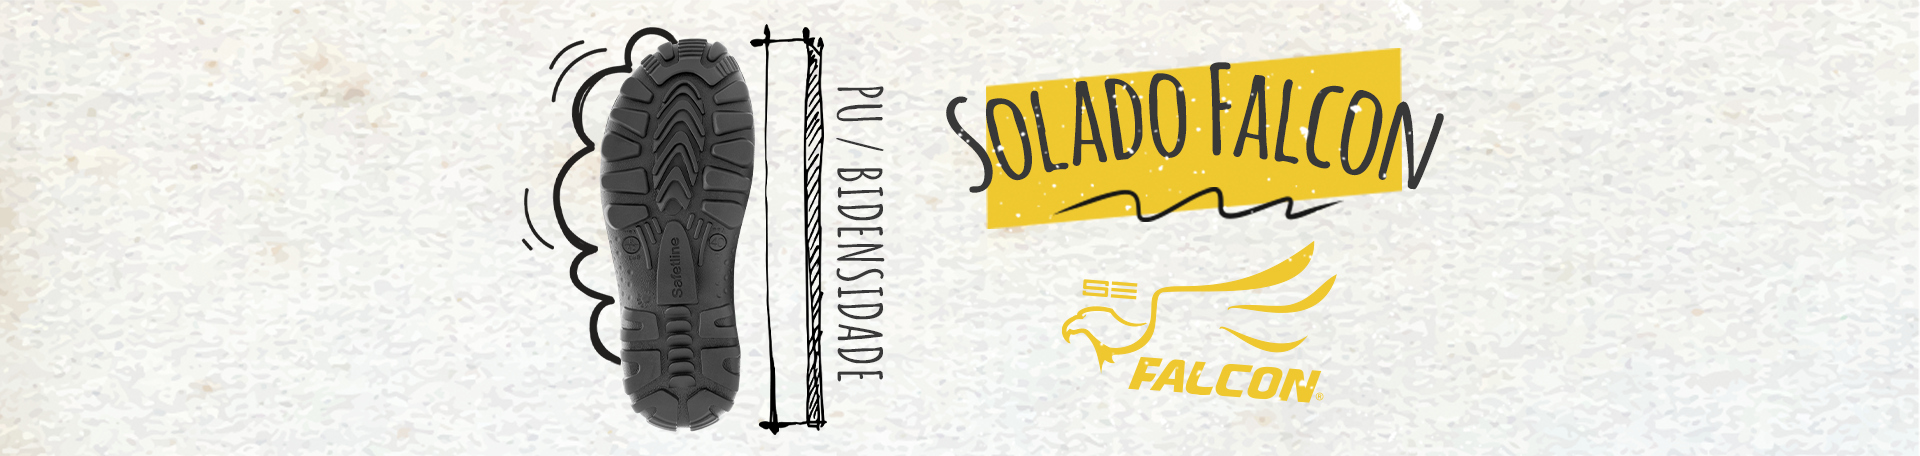 solado PU/PU safetline Falcon